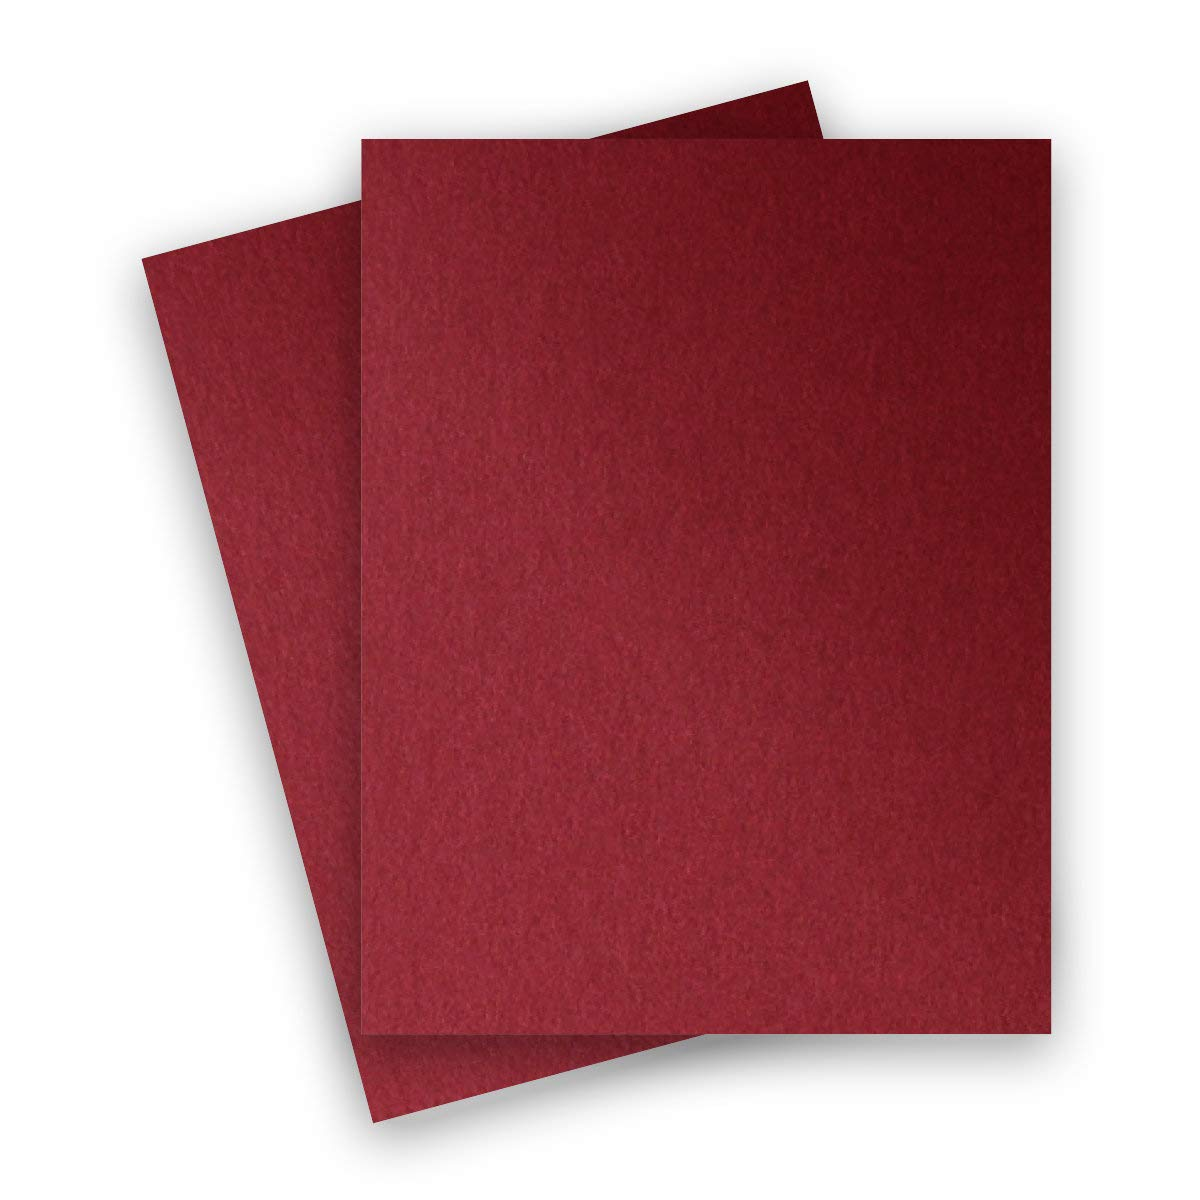 Metallic Dark Red Mars 8-1/2-x-11 Lightweight Multi-use Paper 25-pk - PaperPapers 120 GSM (81lb Text) Letter size Everyday Metallic Paper - Professionals, Designers, Crafters and DIY Projects by Paper Papers